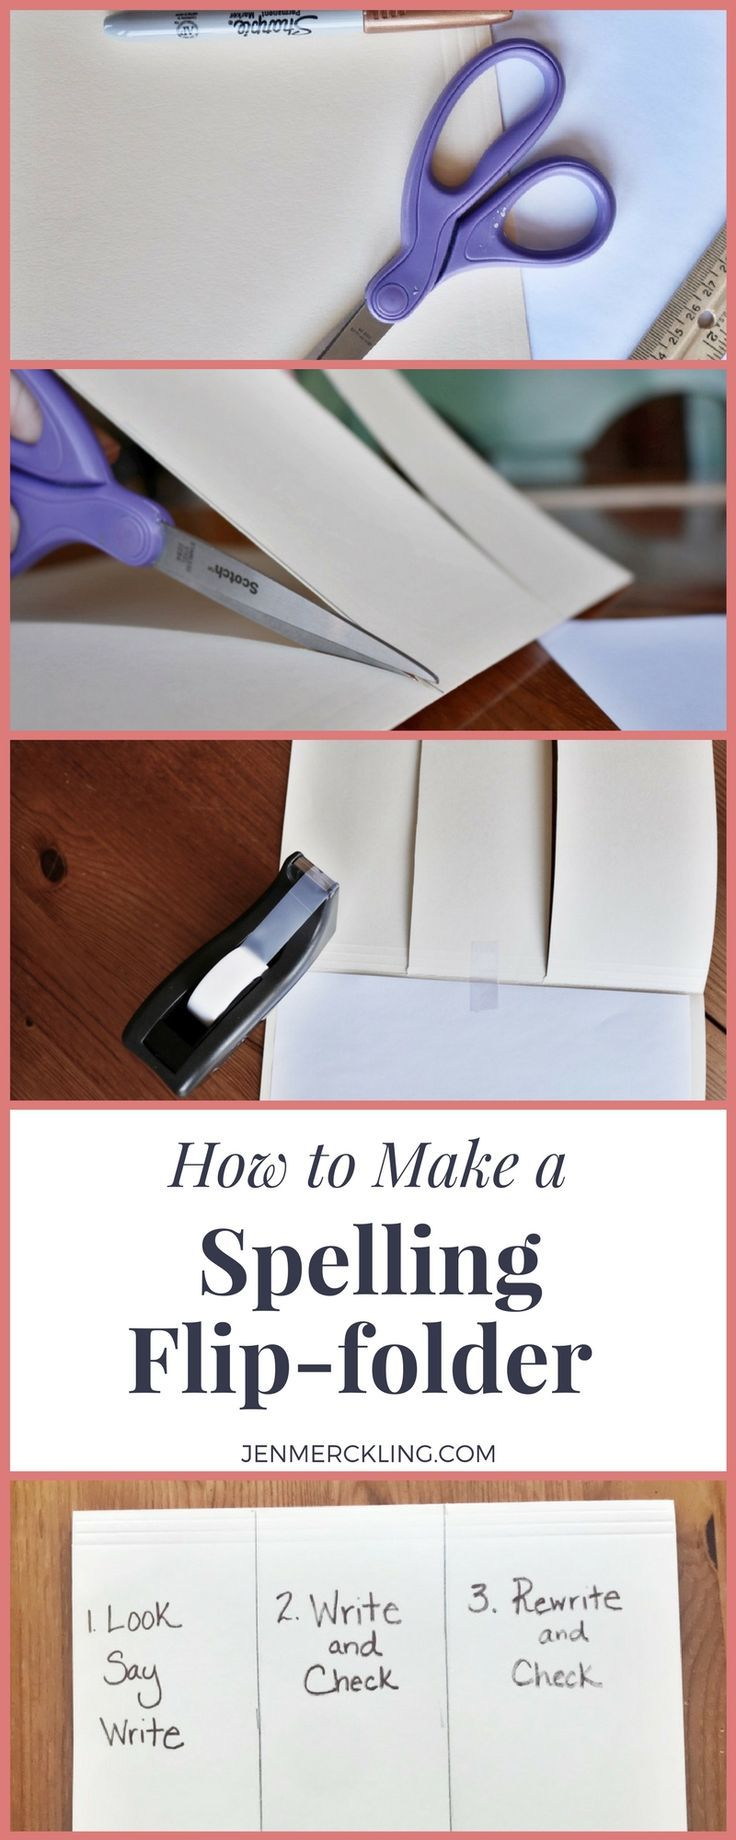 Spelling Flip-Folders--Try this easy and effective way for your child to practice spelling words independently at home! #homeschool #spelling #spellingpractice #flipfolder #independentpractice